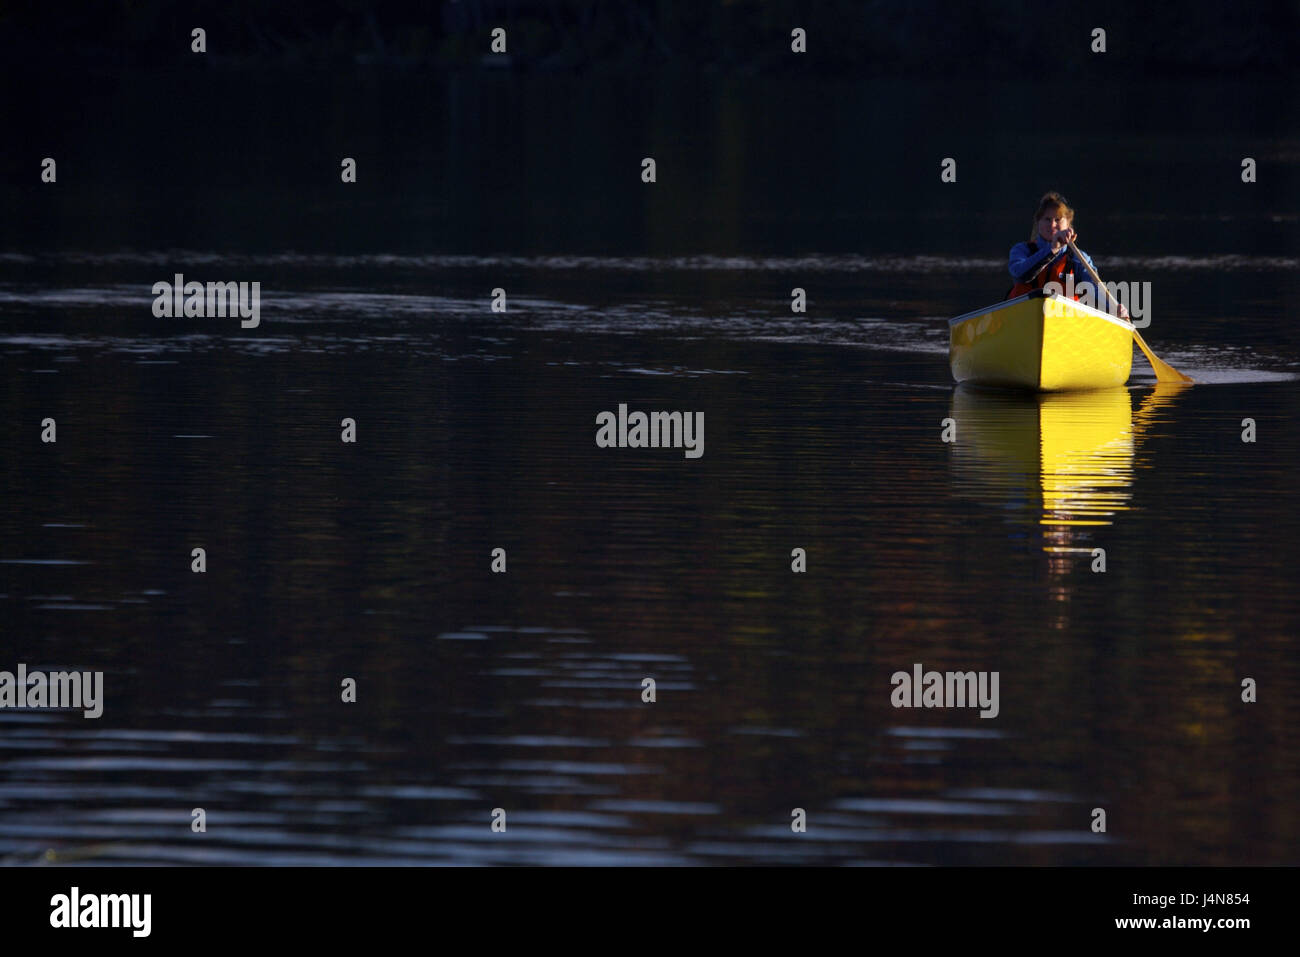 Lakes, woman, canoe, paddle, rock brine, Algonquin Provincial park, Ontario, Canada, - Stock Image